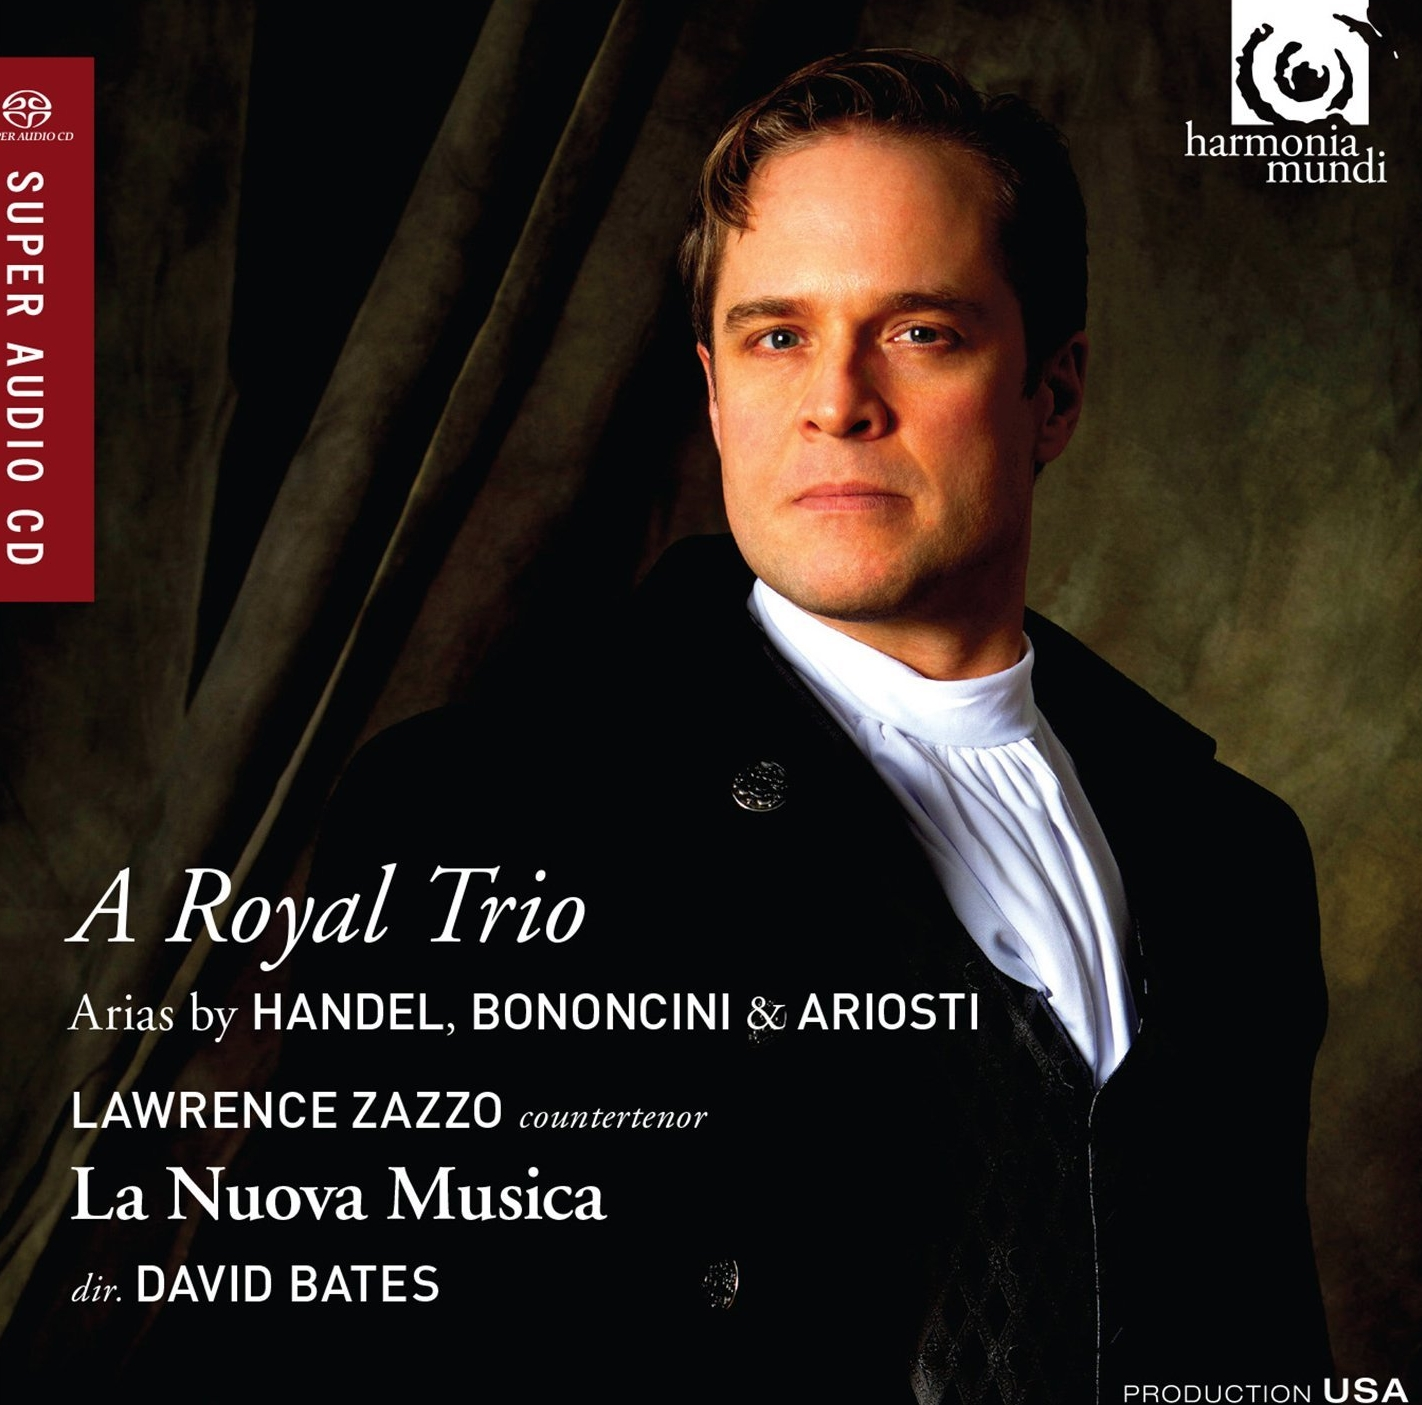 """A Royal Trio - Lawrence's first solo orchestral CD, A Royal Trio, just released by Harmonia Mundi USA.""""Zazzo in glorious voice throughout****"""" The GuardianClick here to read interviewClick here to order from Amazon"""